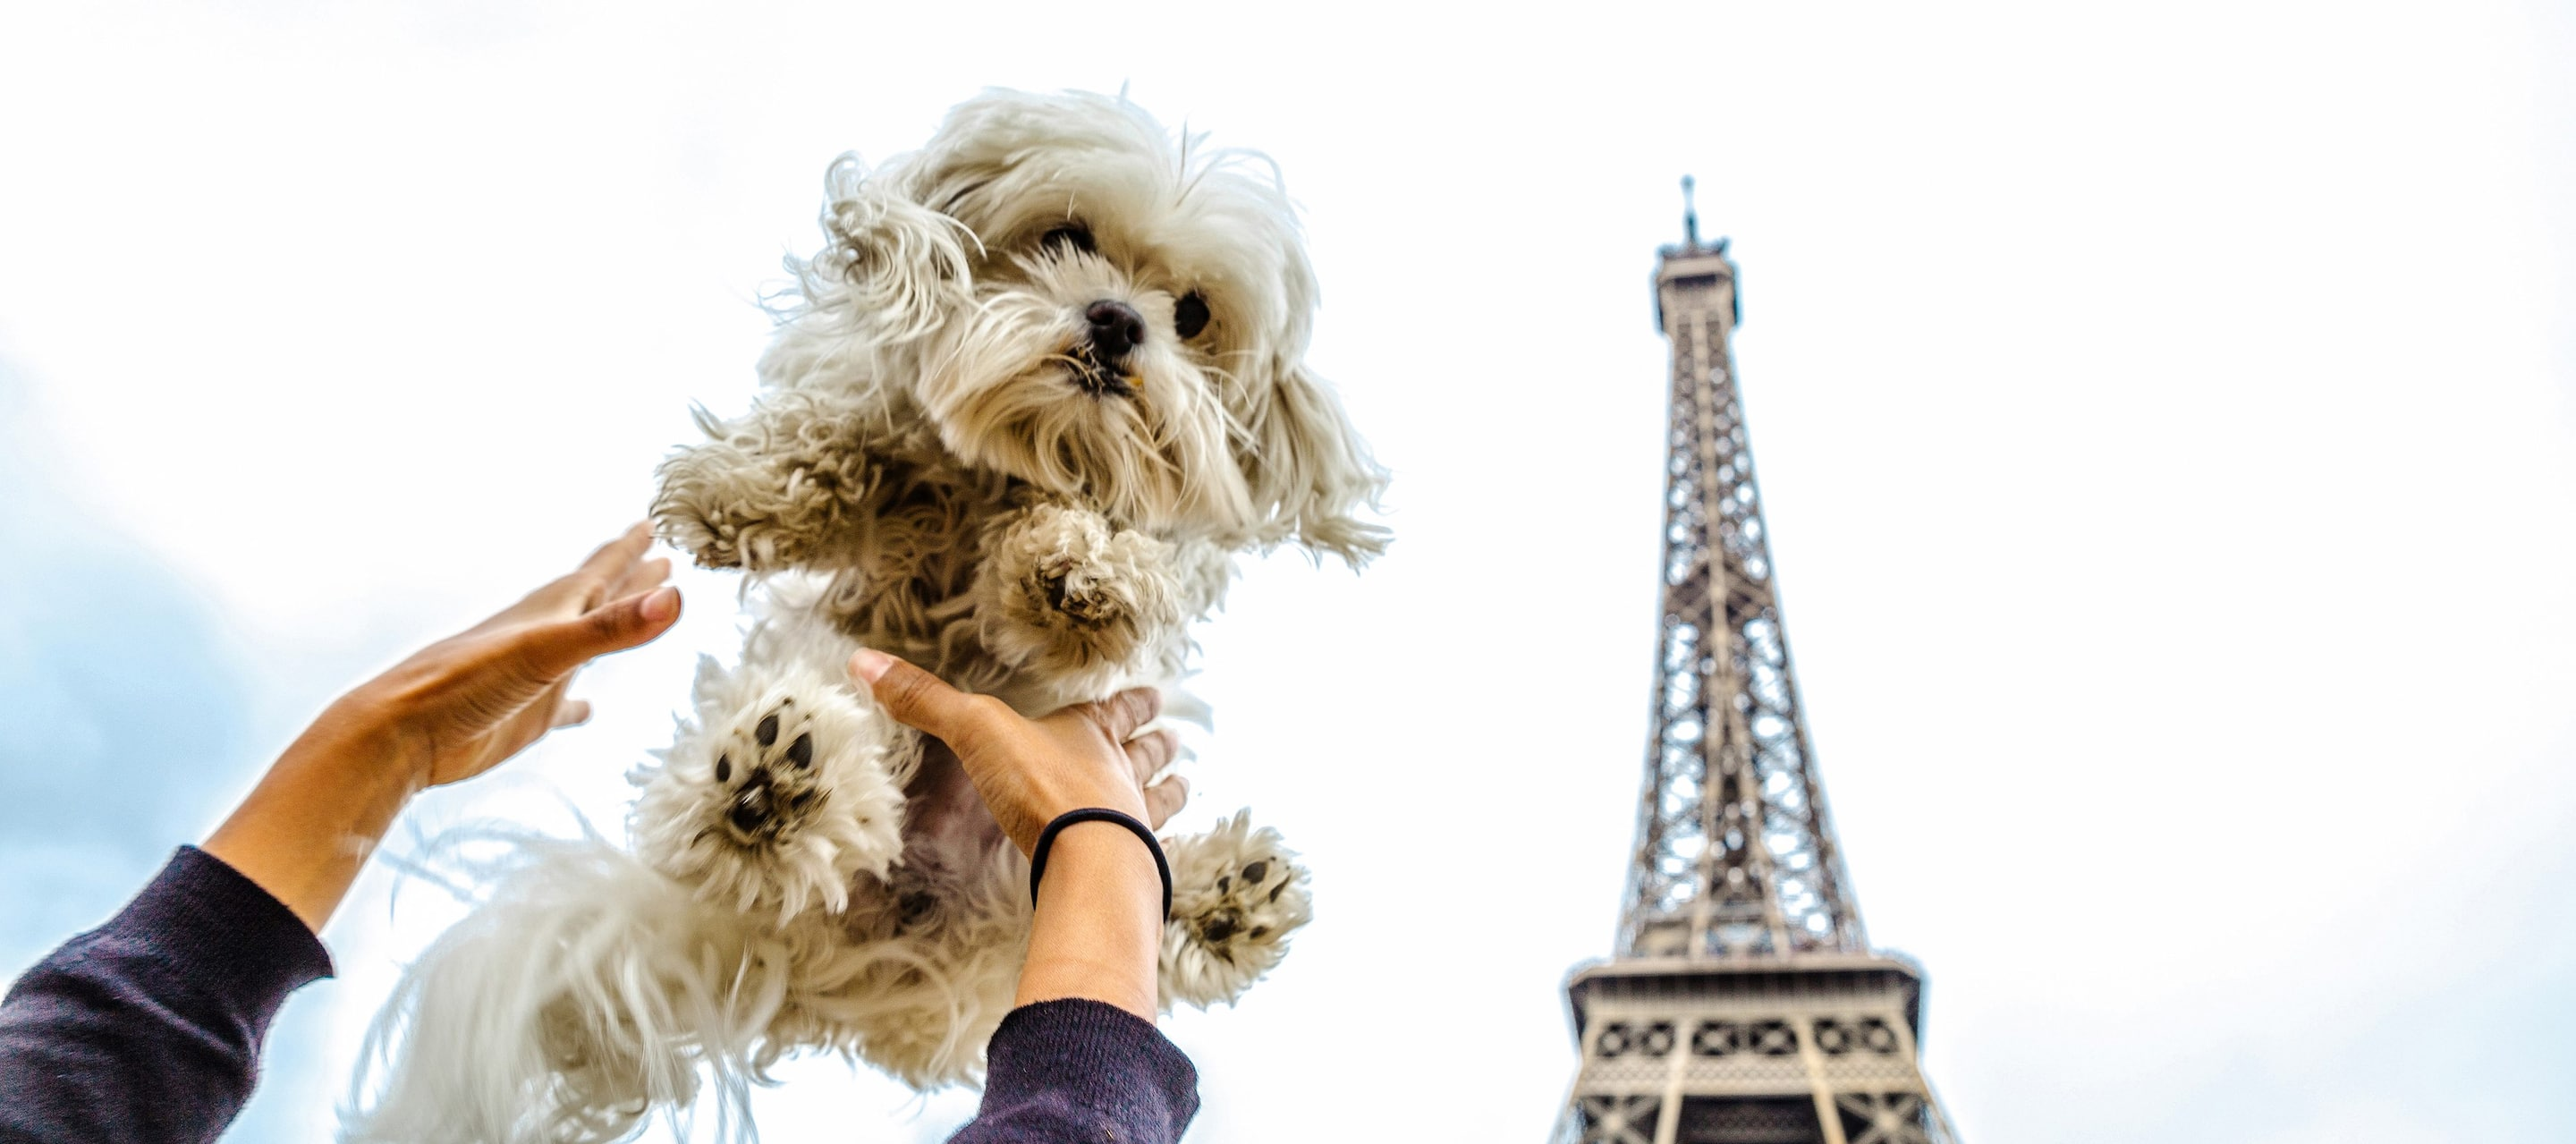 A dog's ruff guide to Paris